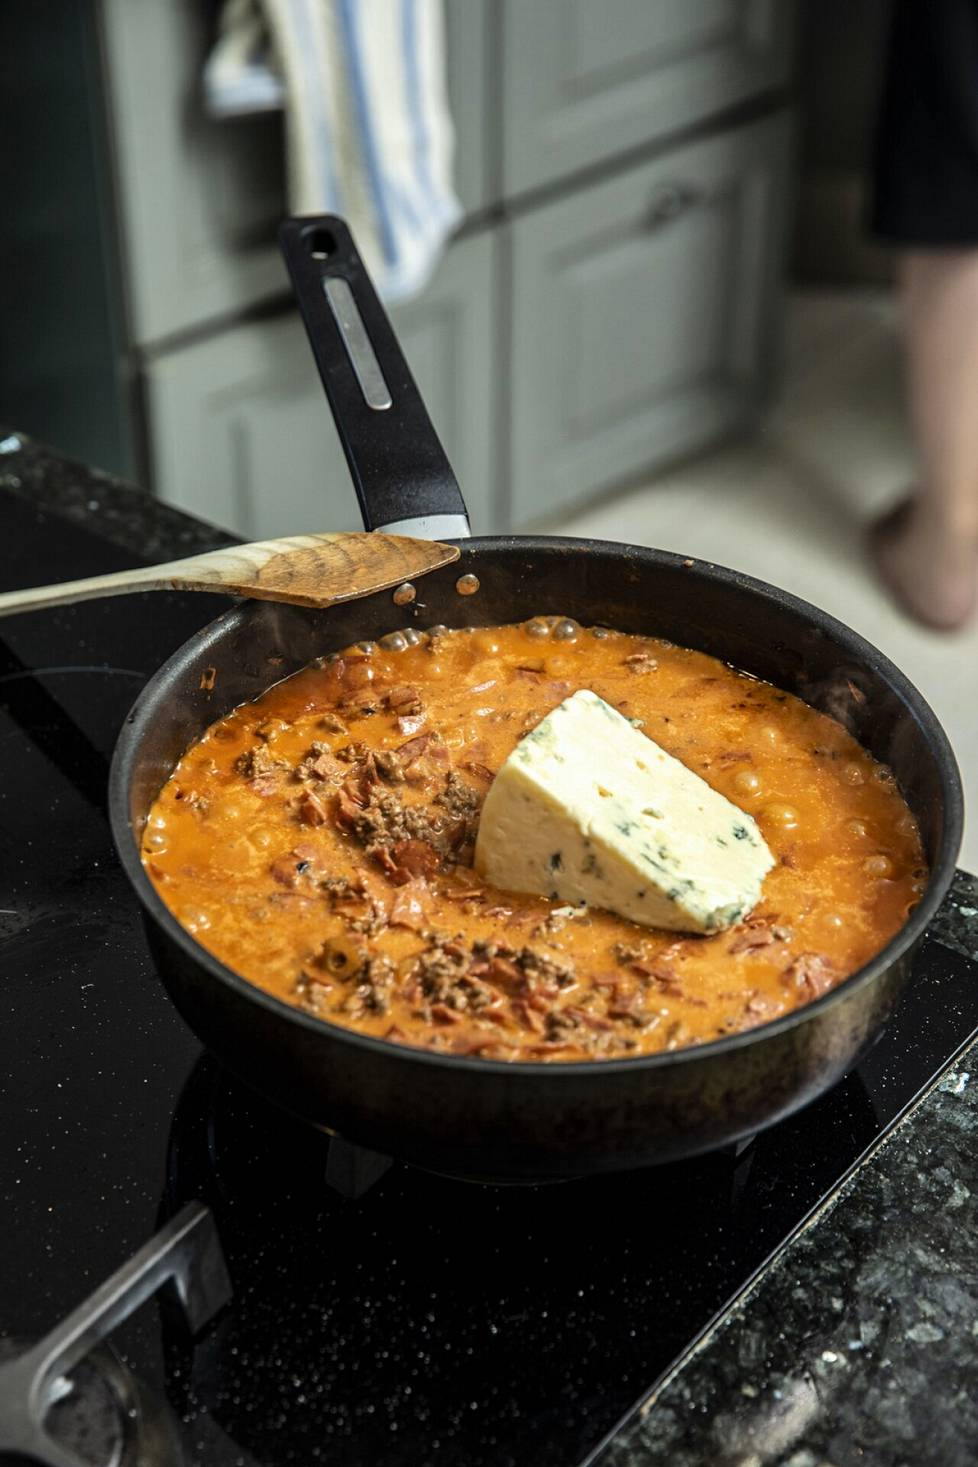 Mikko Kivinen adds a thick slice of blue cheese to his minced meat pan.